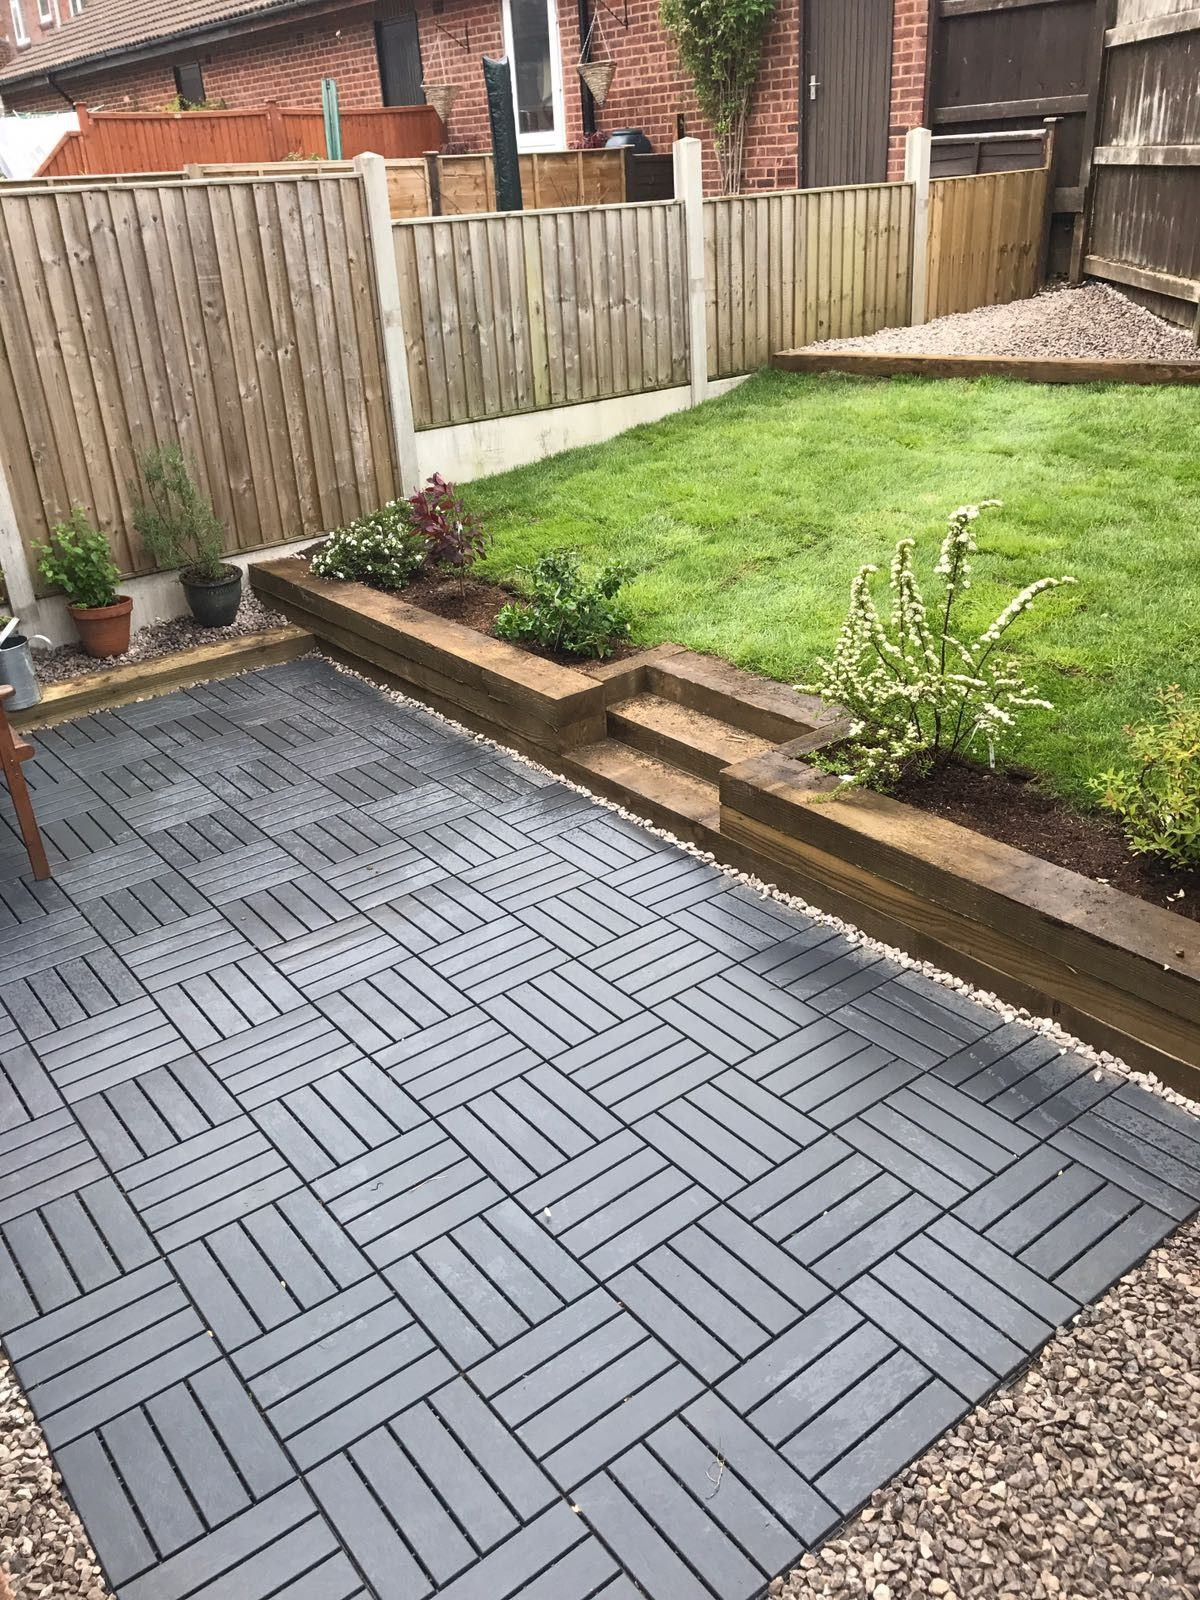 Ikea Runnen Decking Tiles Used To